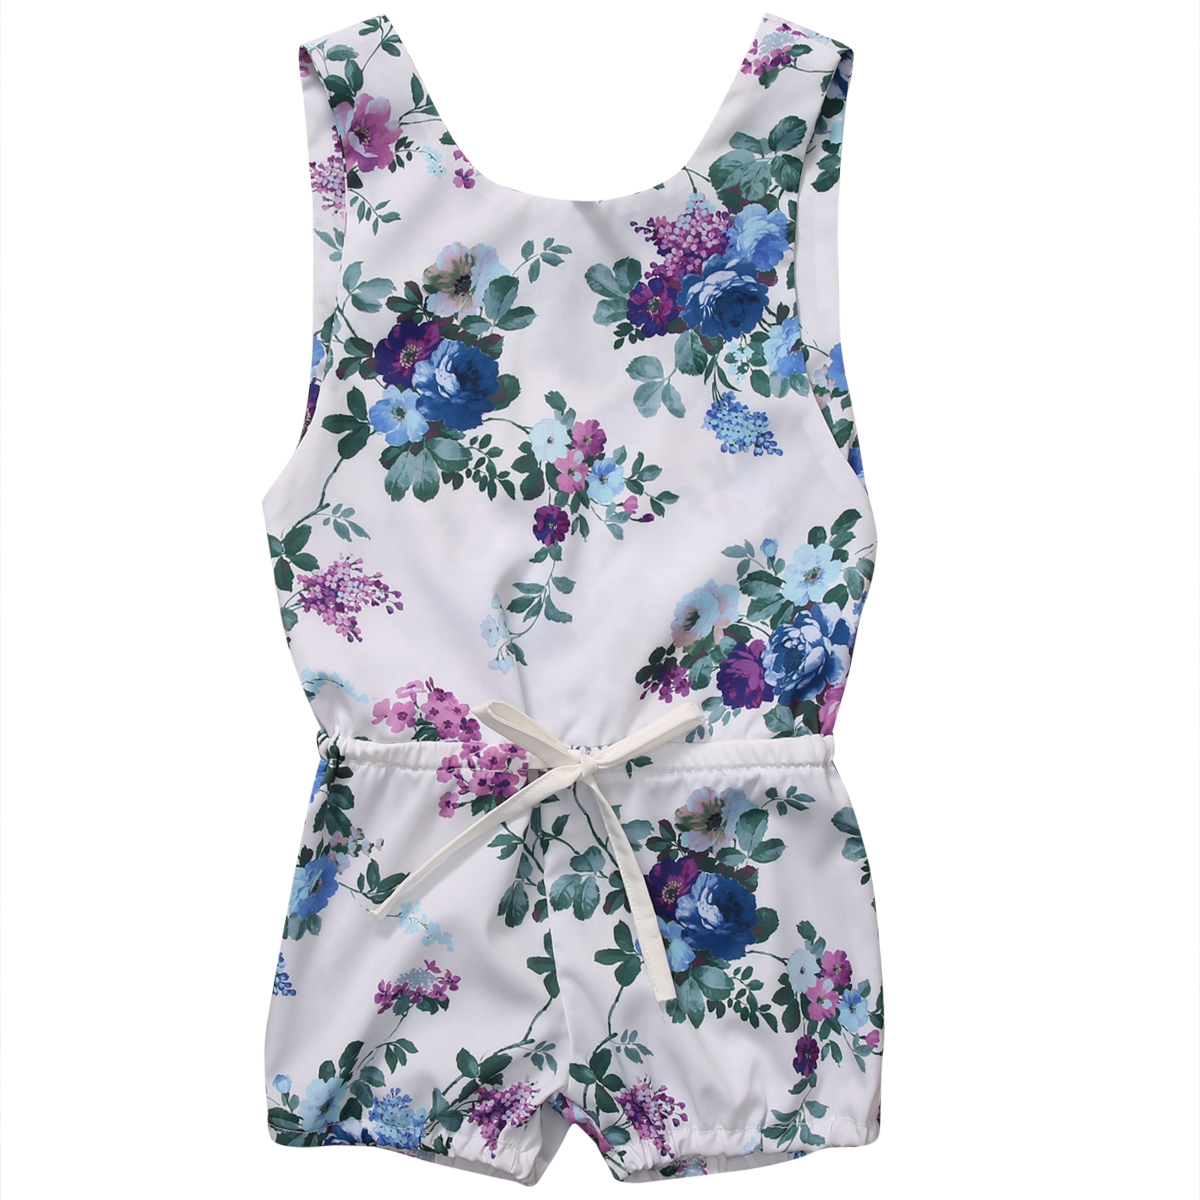 Little Girls Summer Floral Backless Rompers Newborn Toddler Baby Girls Flower Jumper Romper Jumpsuit One-pieces Clothes 0-4Y newborn infant baby girl clothes strap lace floral romper jumpsuit outfit summer cotton backless one pieces outfit baby onesie